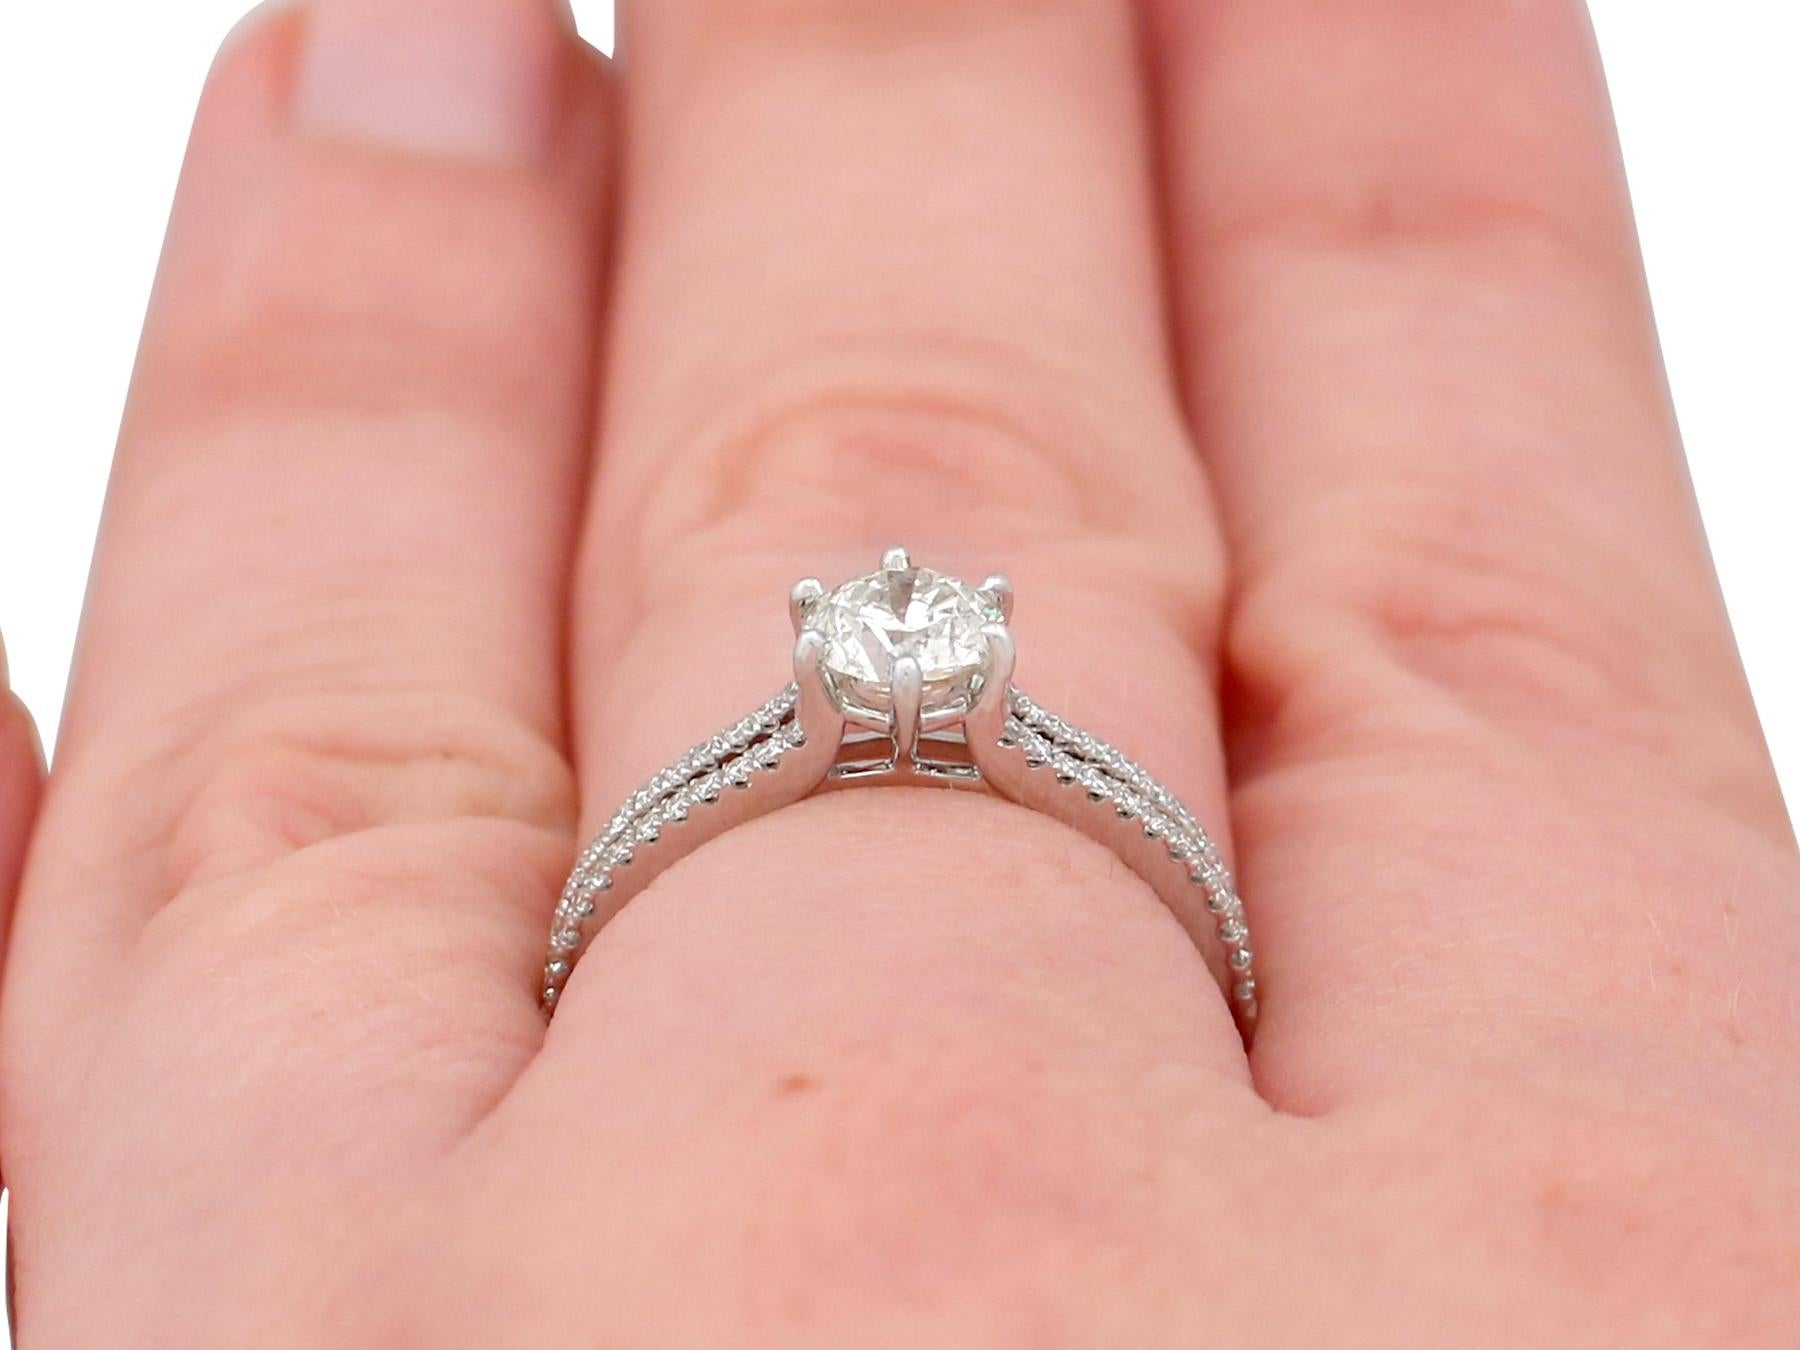 0.76 Carat Diamond White Gold Solitaire Engagement Ring For Sale at ...